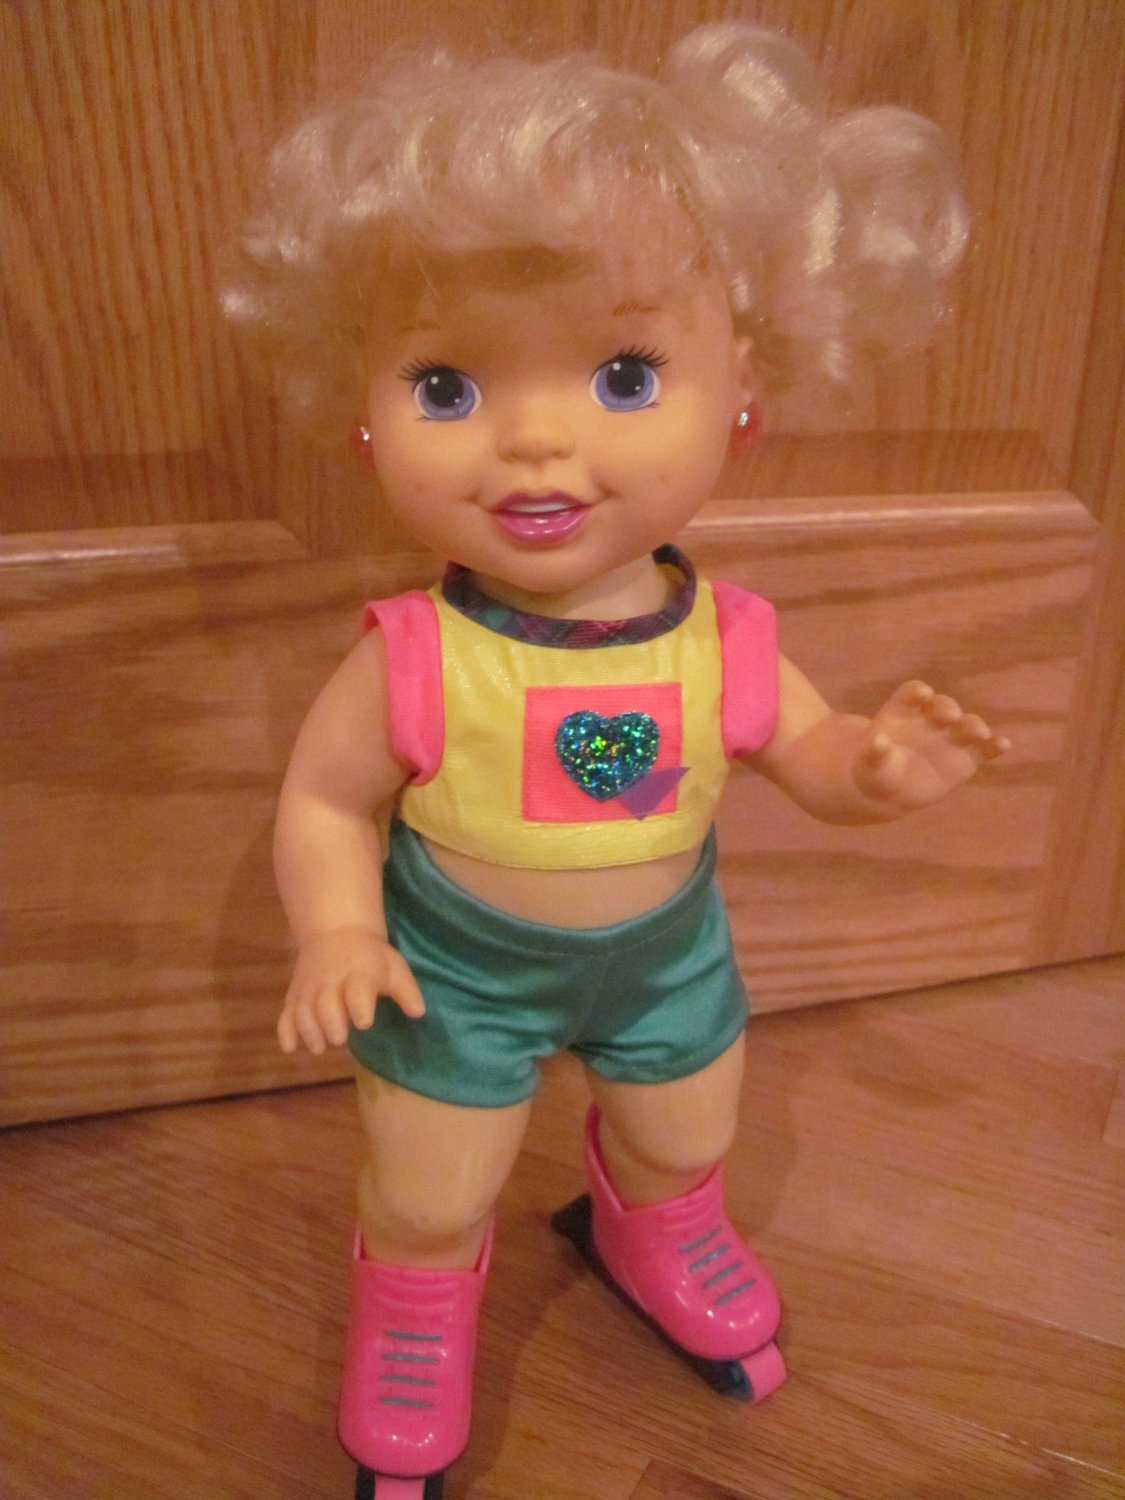 Vintage 1996 Tyco Rollerblade Baby Doll Skate Derby Blond